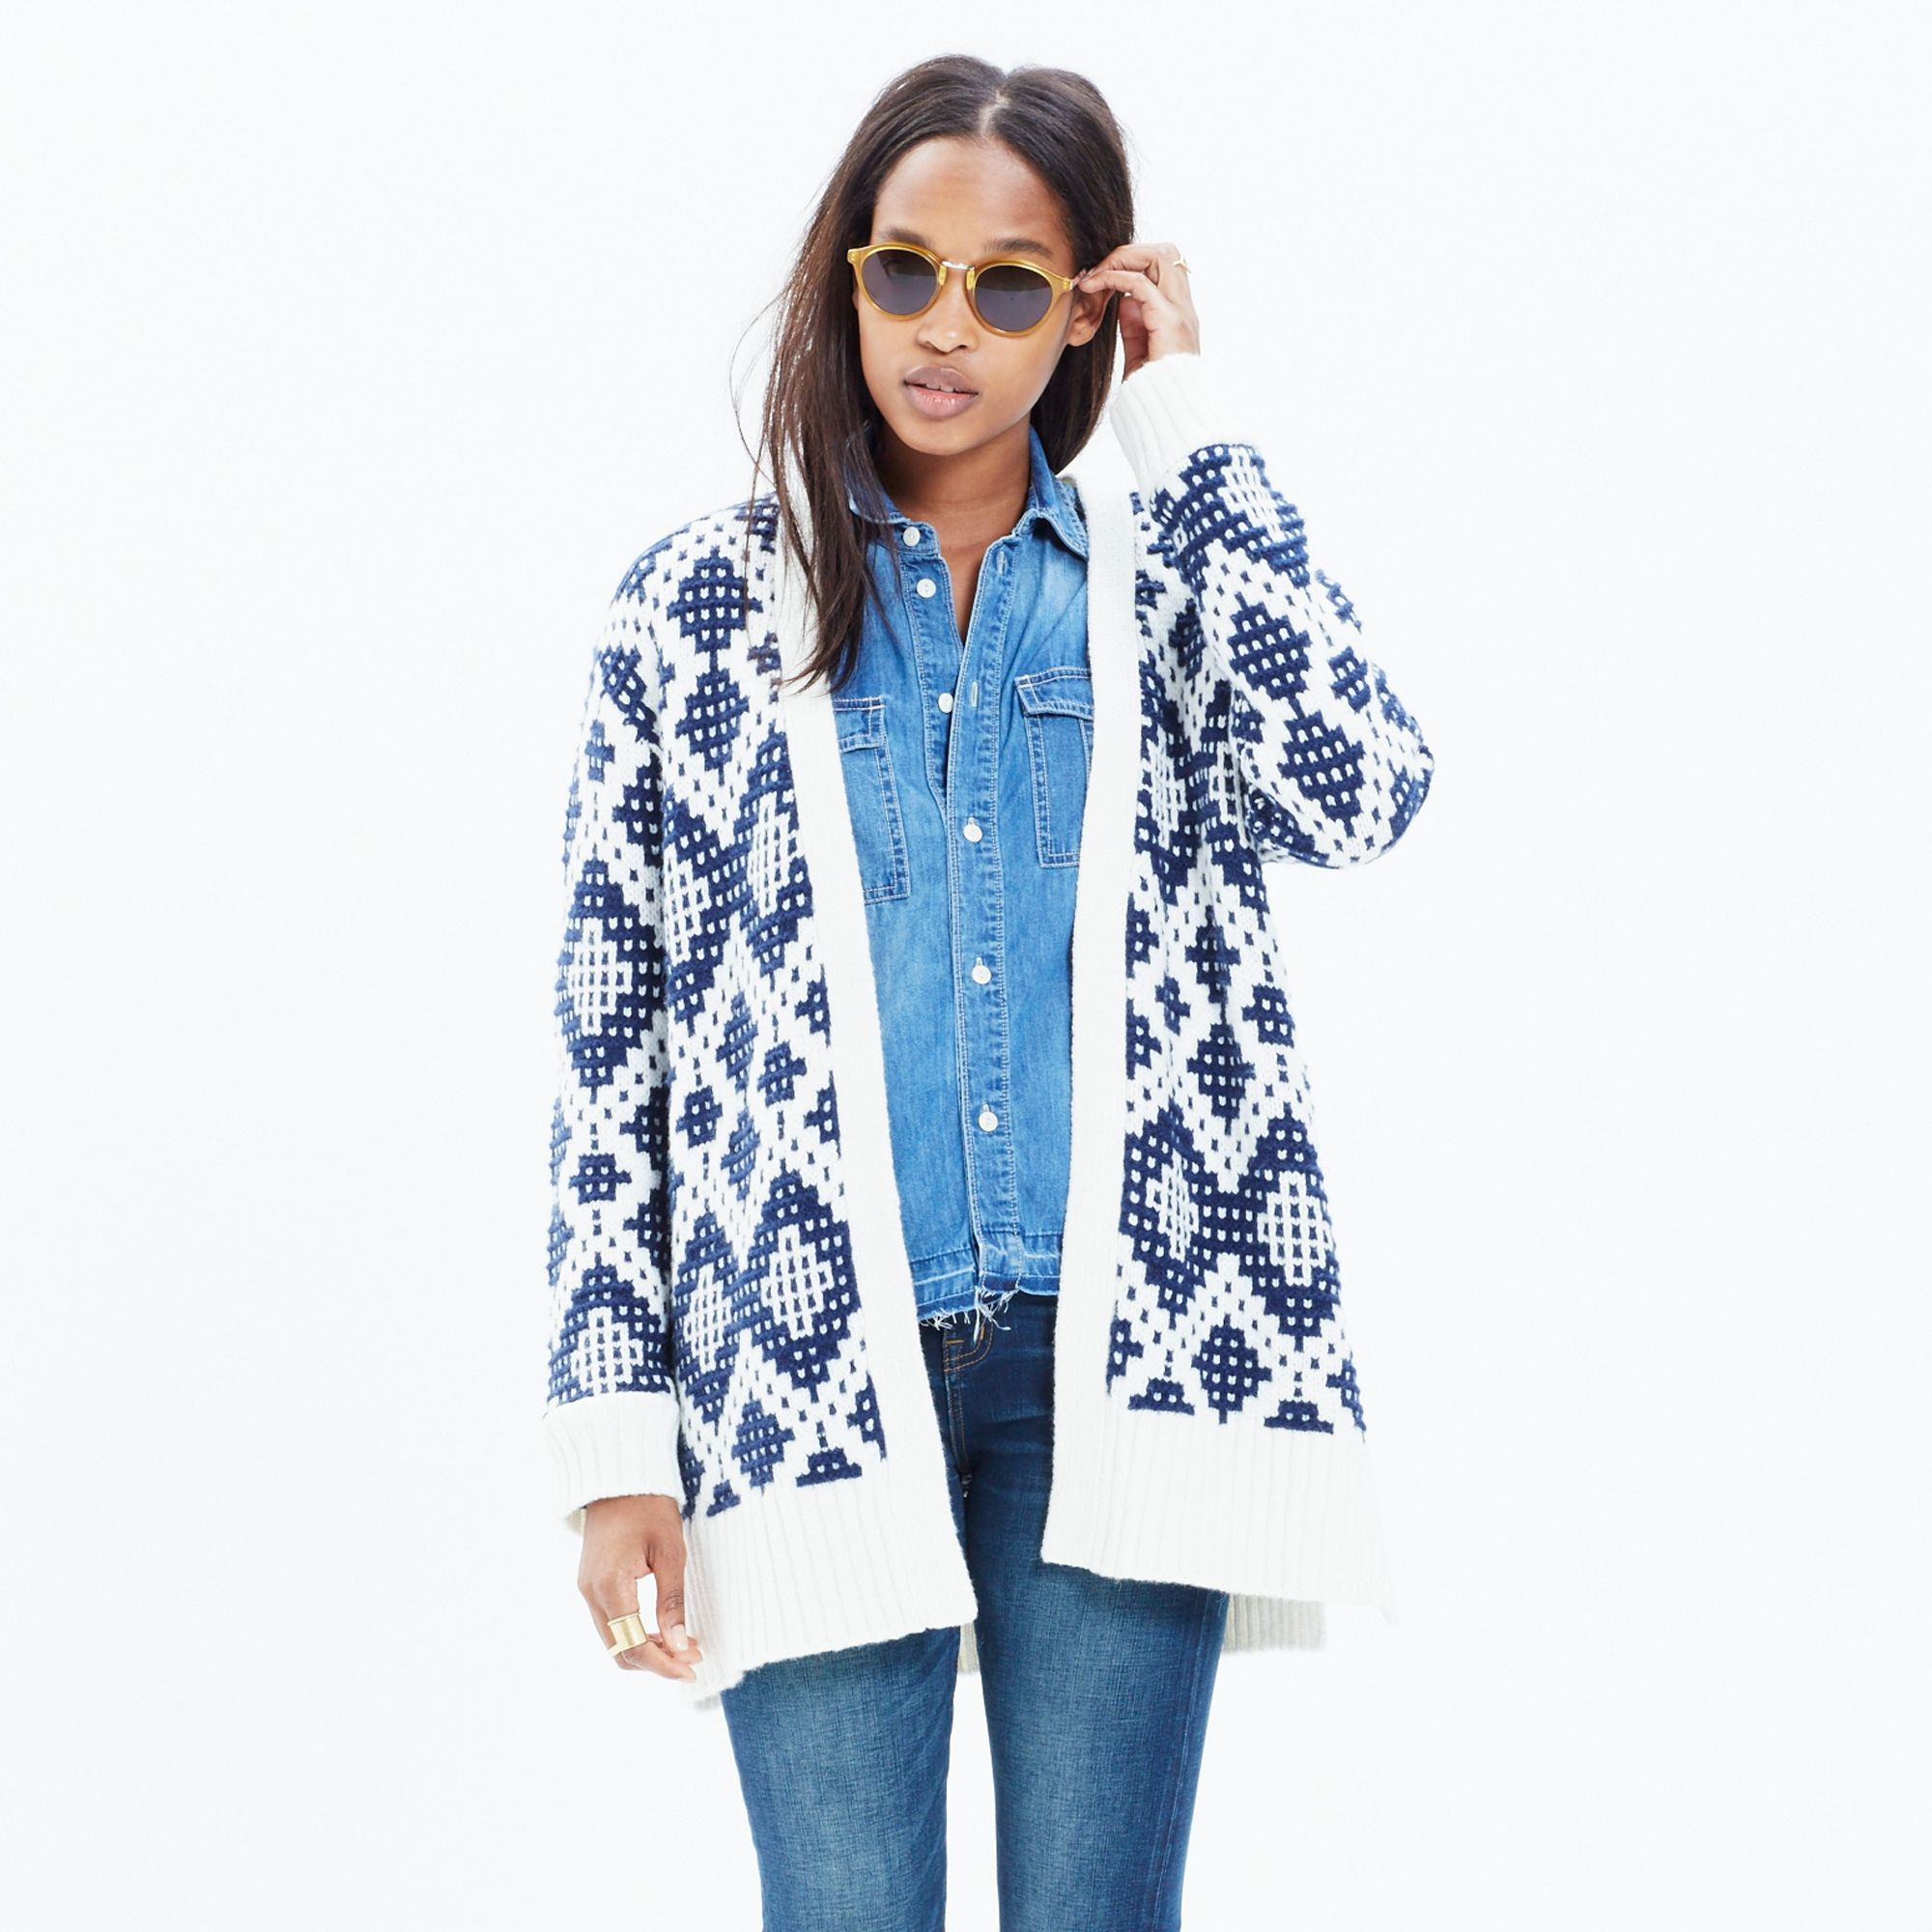 Madewell Contrast Fair Isle Cardigan Sweater in Blue | Lyst